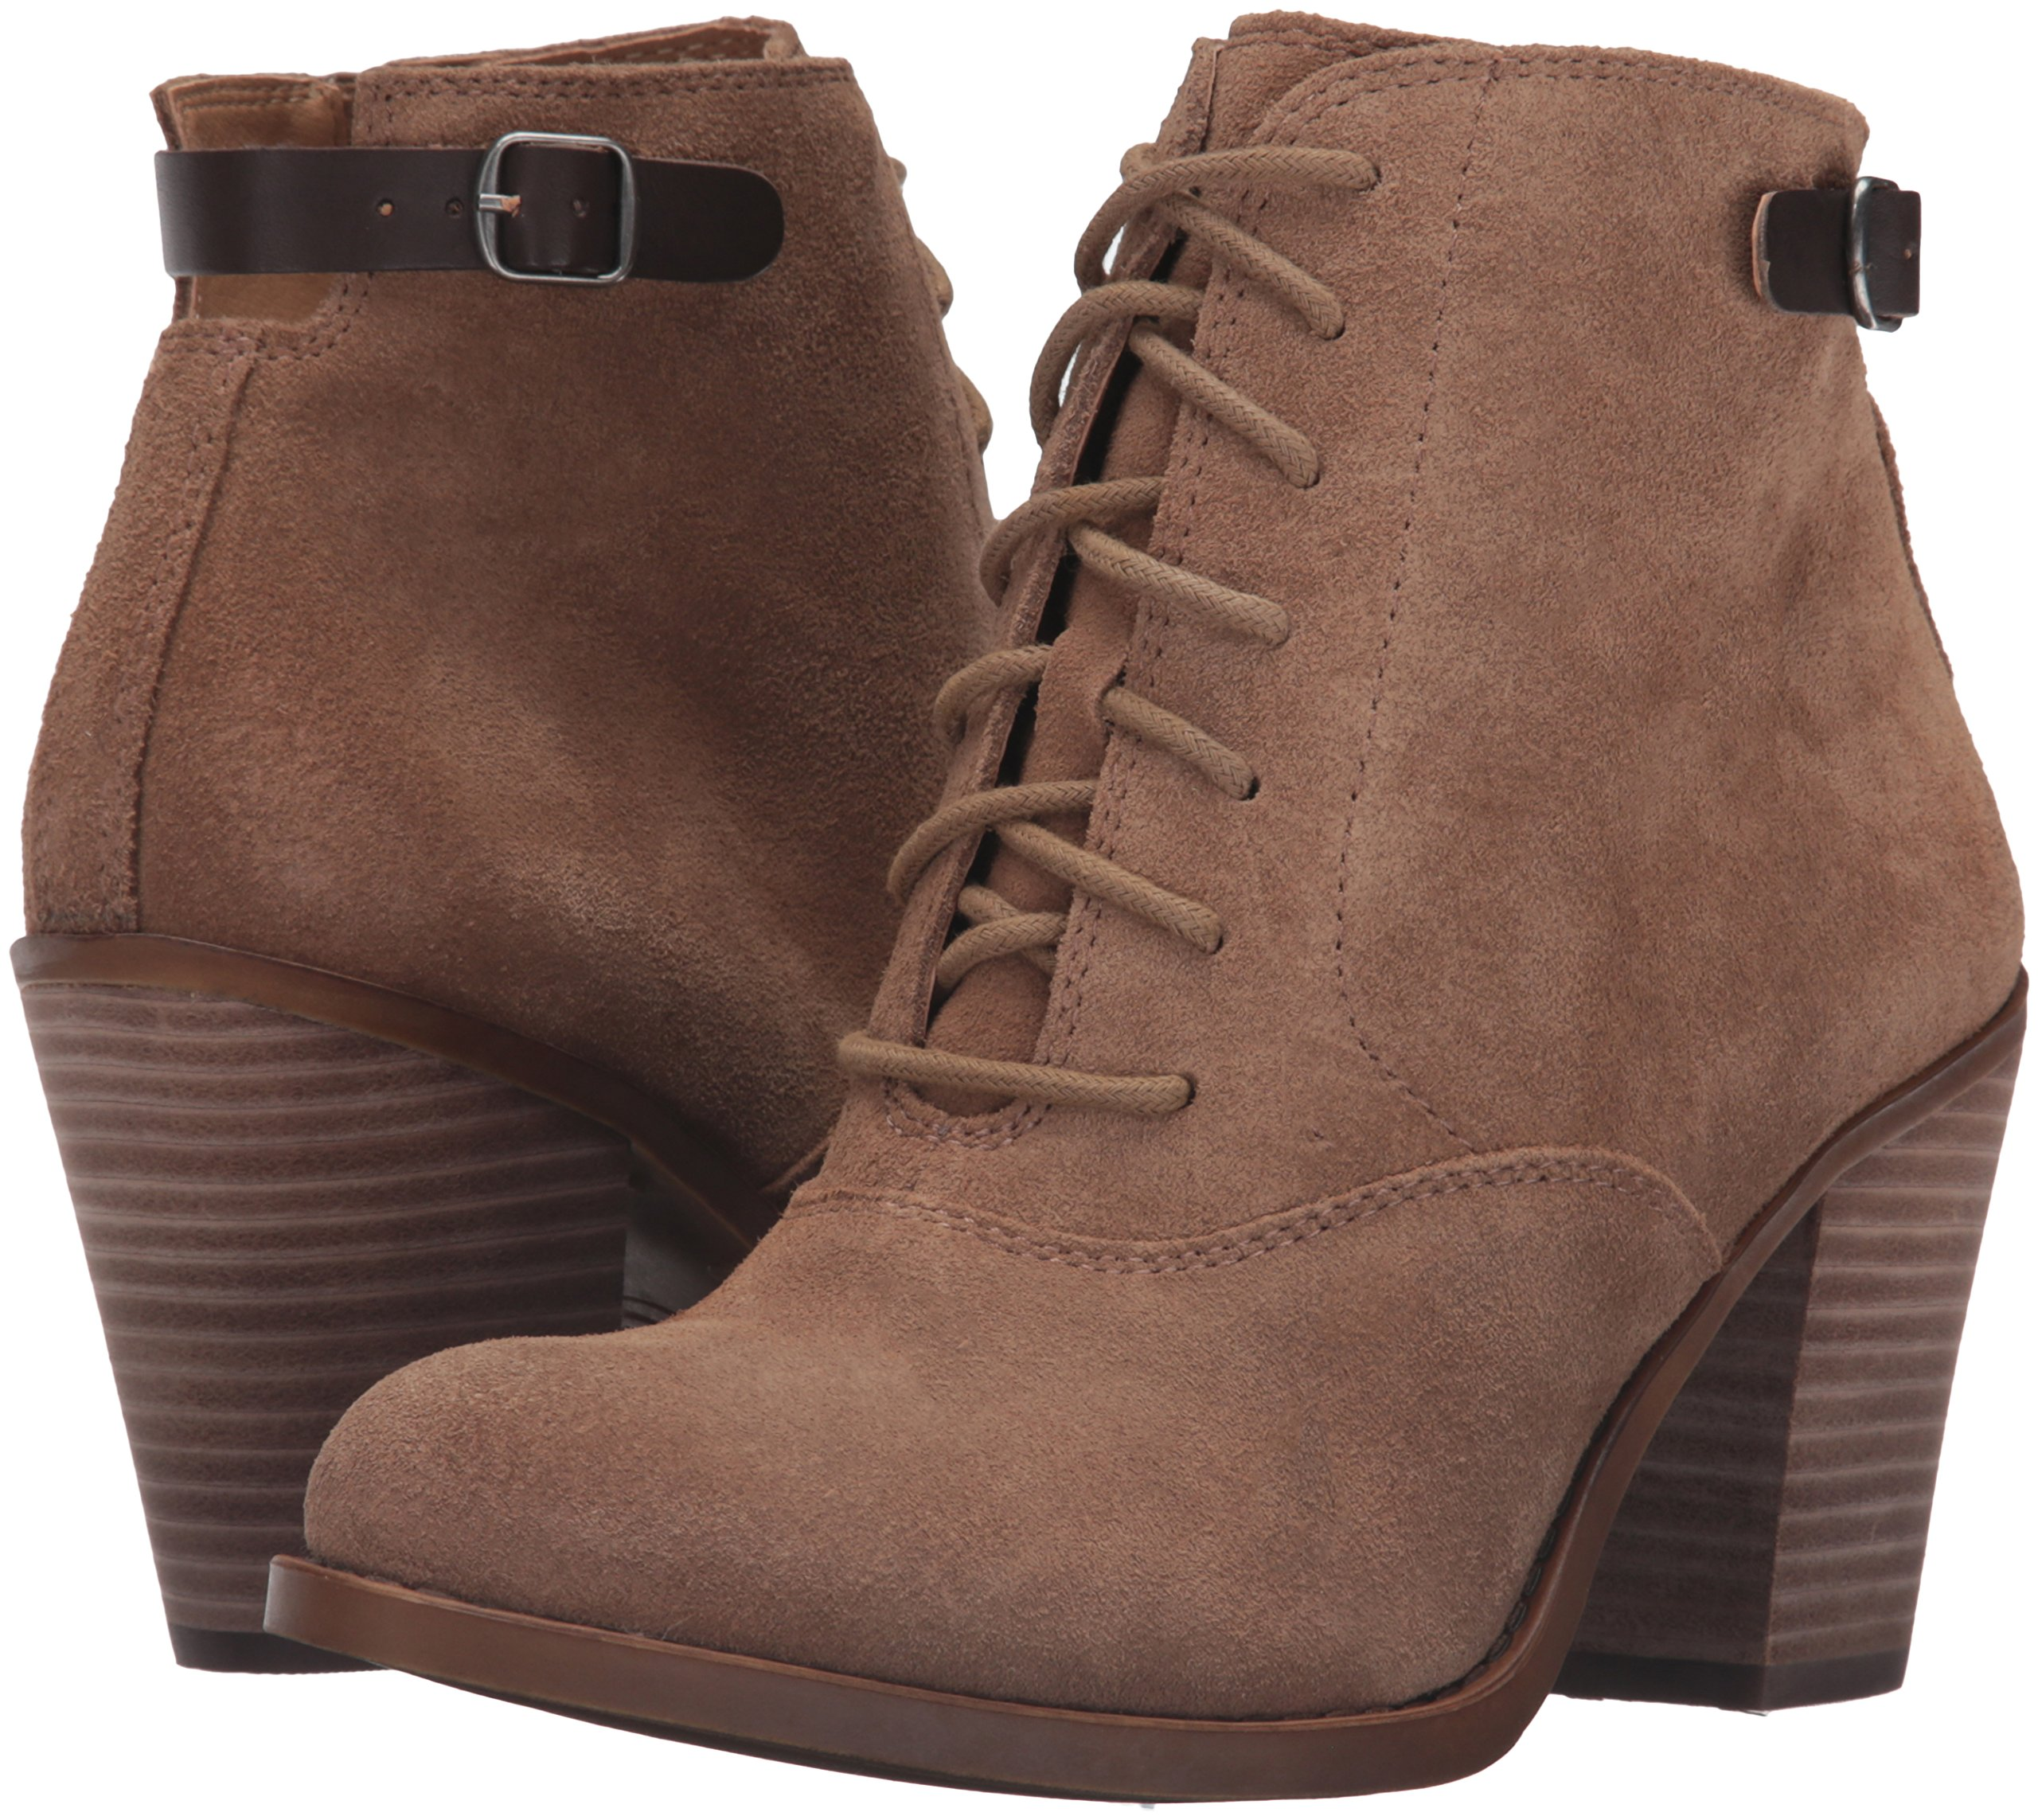 Lucky Brand Women's Echoh Ankle Bootie, Sesame, 10 M US by Lucky Brand (Image #6)